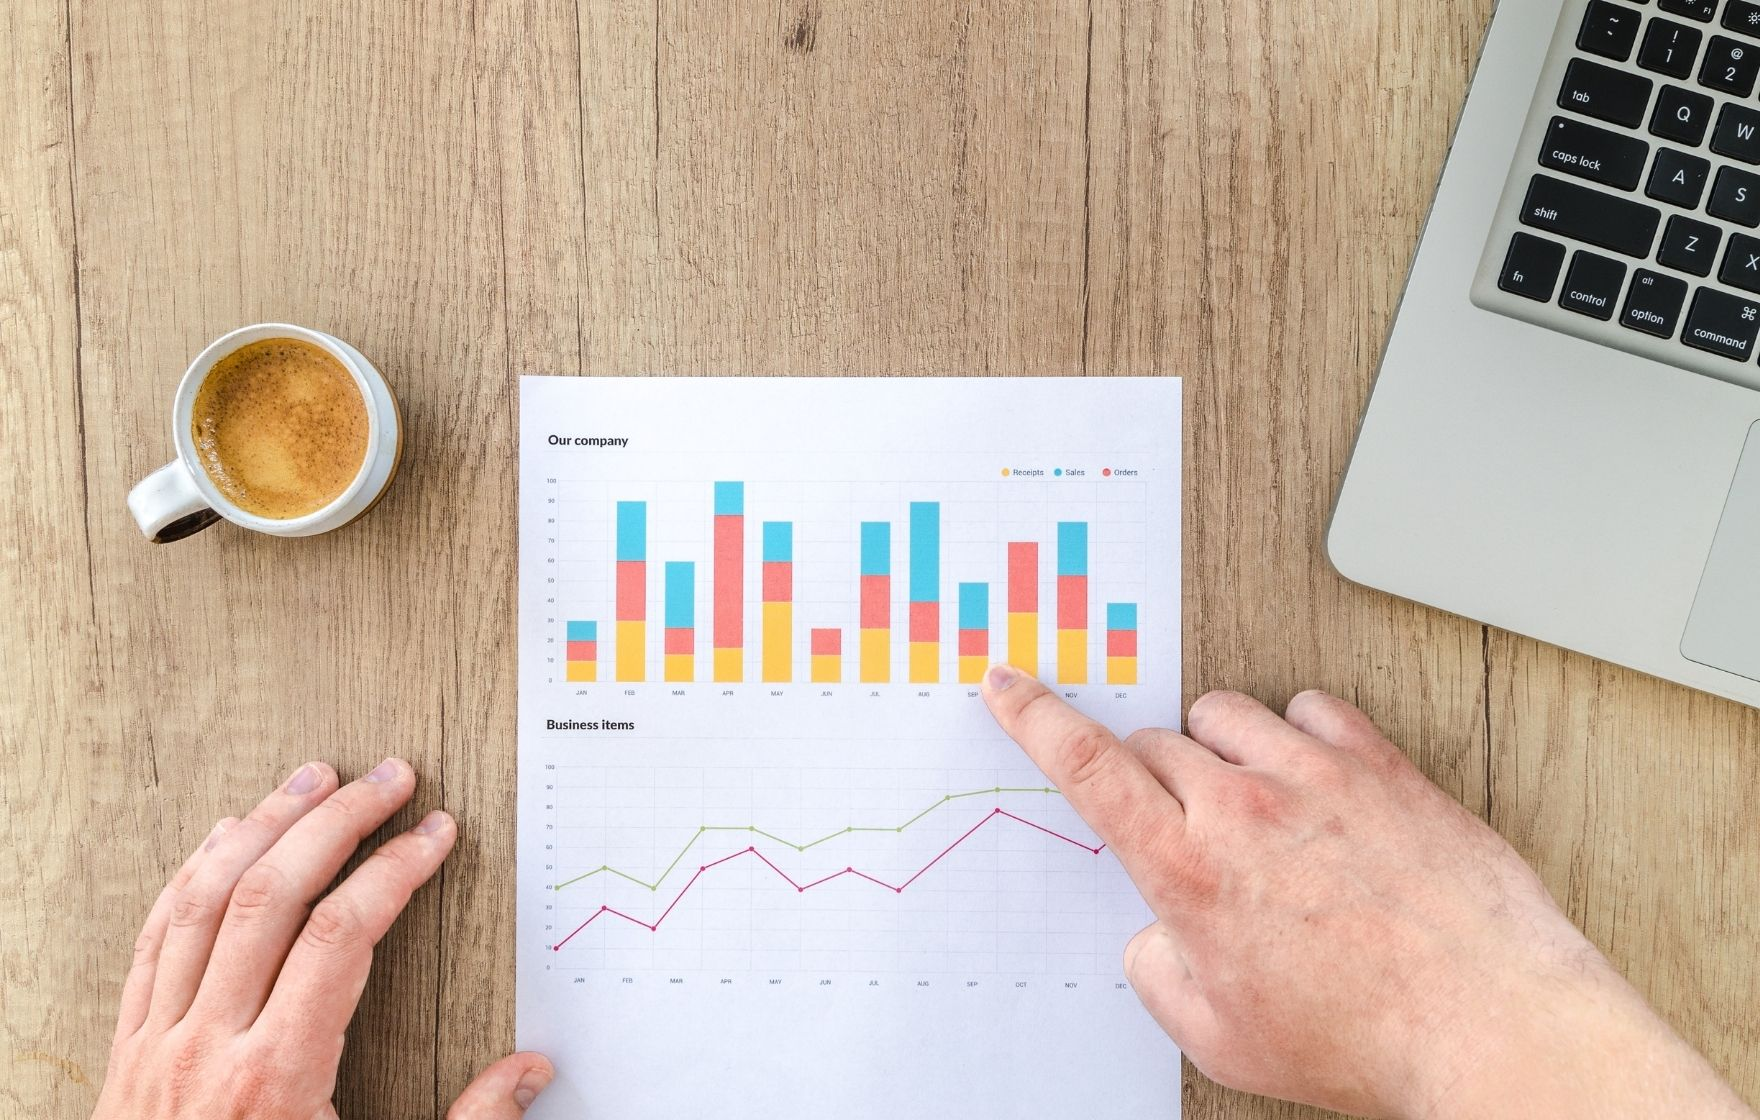 Self managed super funds pros and cons image of person pointing at graph